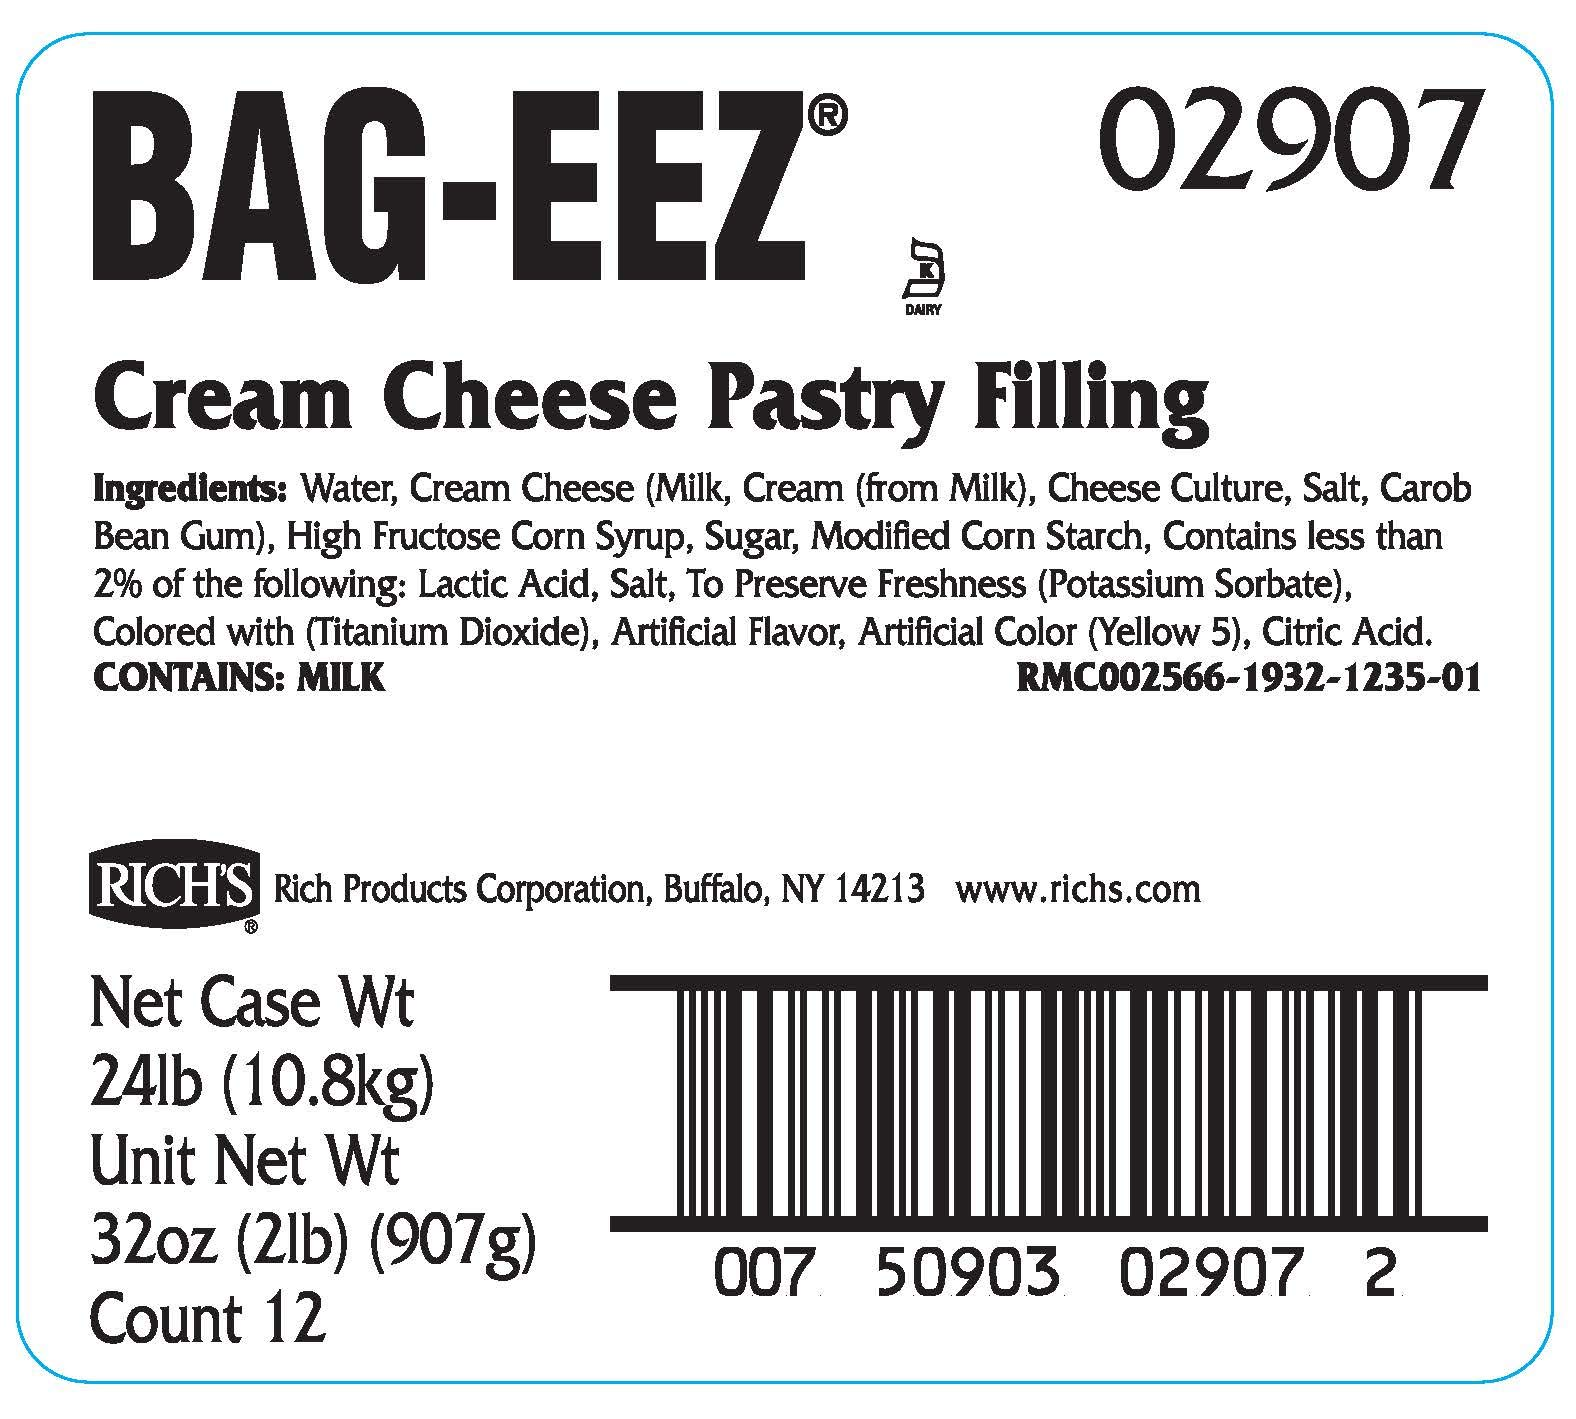 Rich's JW Allen Cream Cheese Pastry Filling Bag-Eez, 12 Pack, 2 lb Bags by Rich's (Image #2)